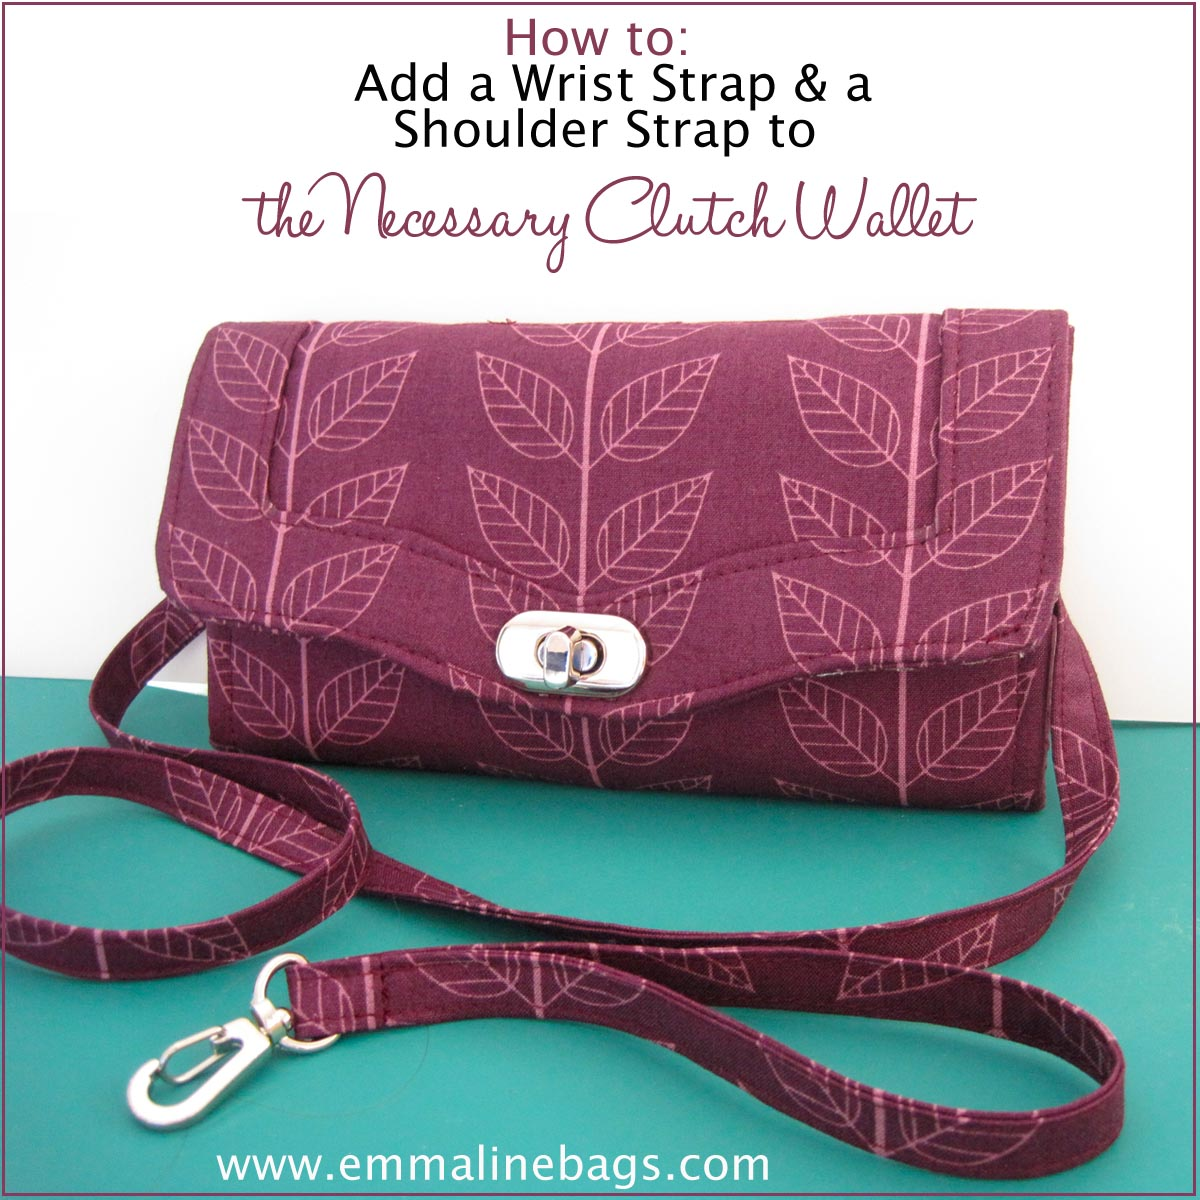 Emmaline bags sewing patterns and purse supplies how to add a how to add a wrist strap or a removable shoulder strap to your necessary clutch wallet a tutorial jeuxipadfo Choice Image